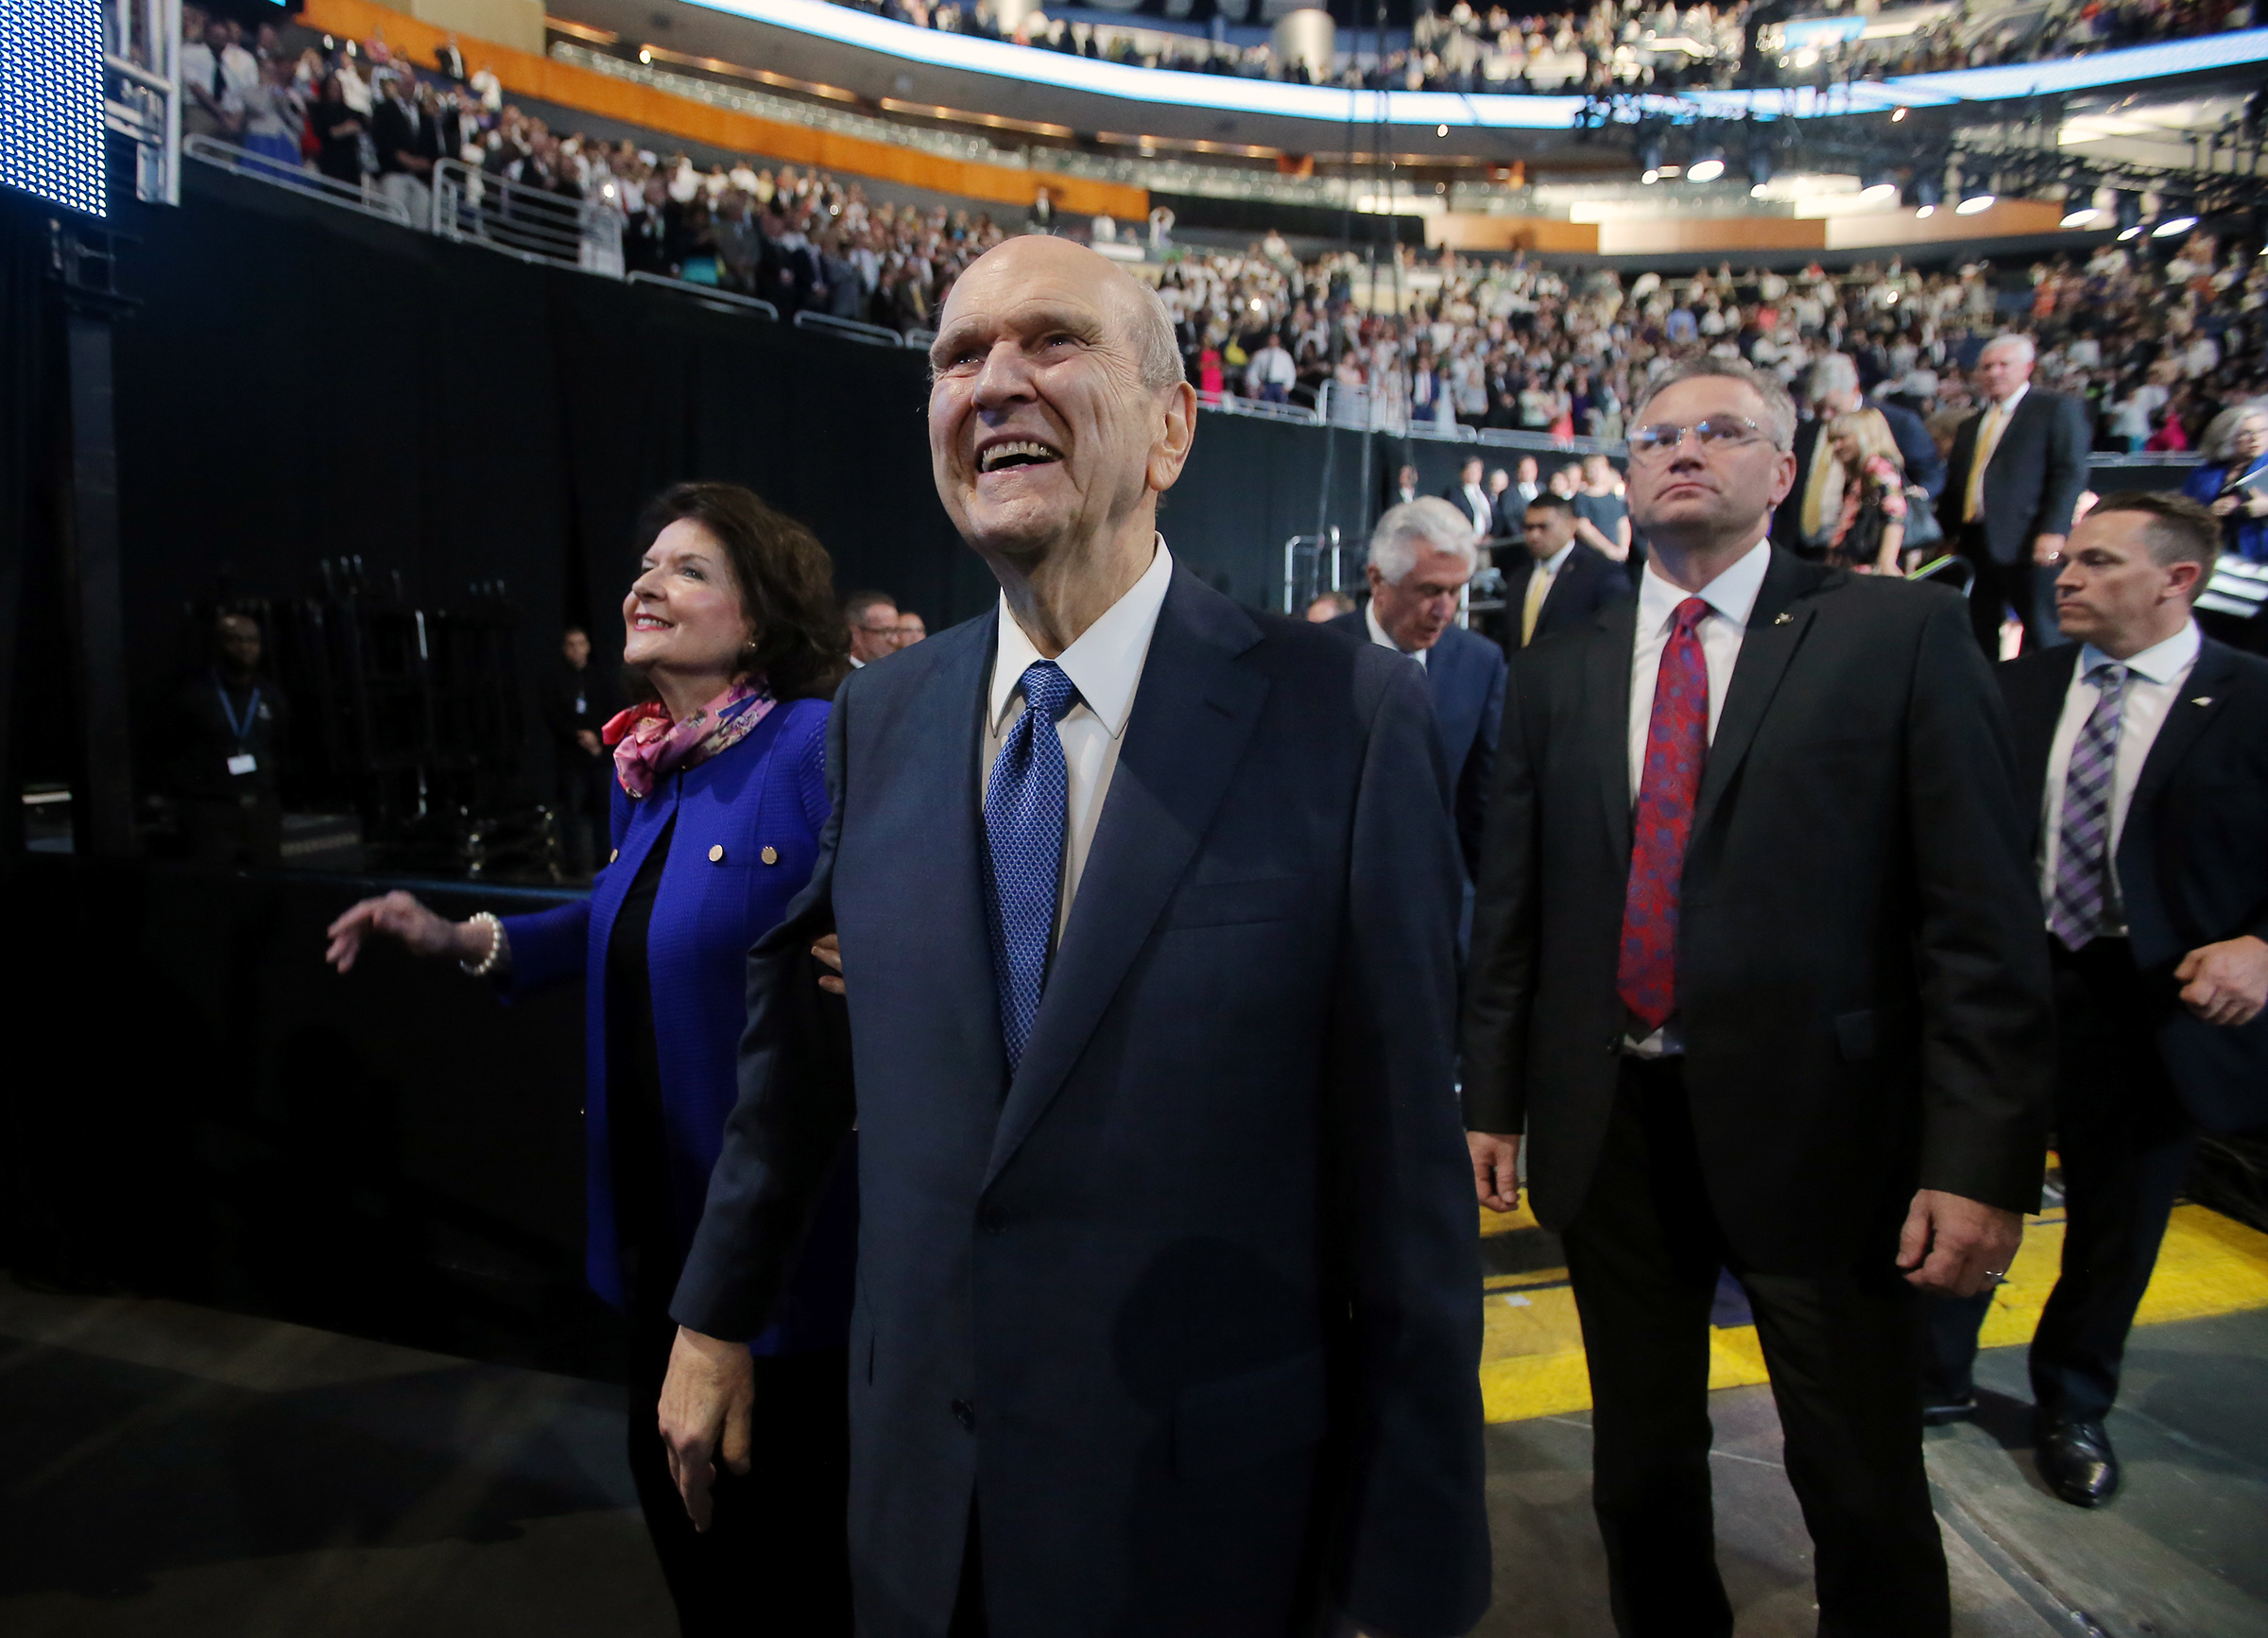 President Russell M. Nelson and his wife, Sister Wendy Nelson, smile as they leave following the June 9, 2019, devotional at the Amway Center in Orlando, Florida.